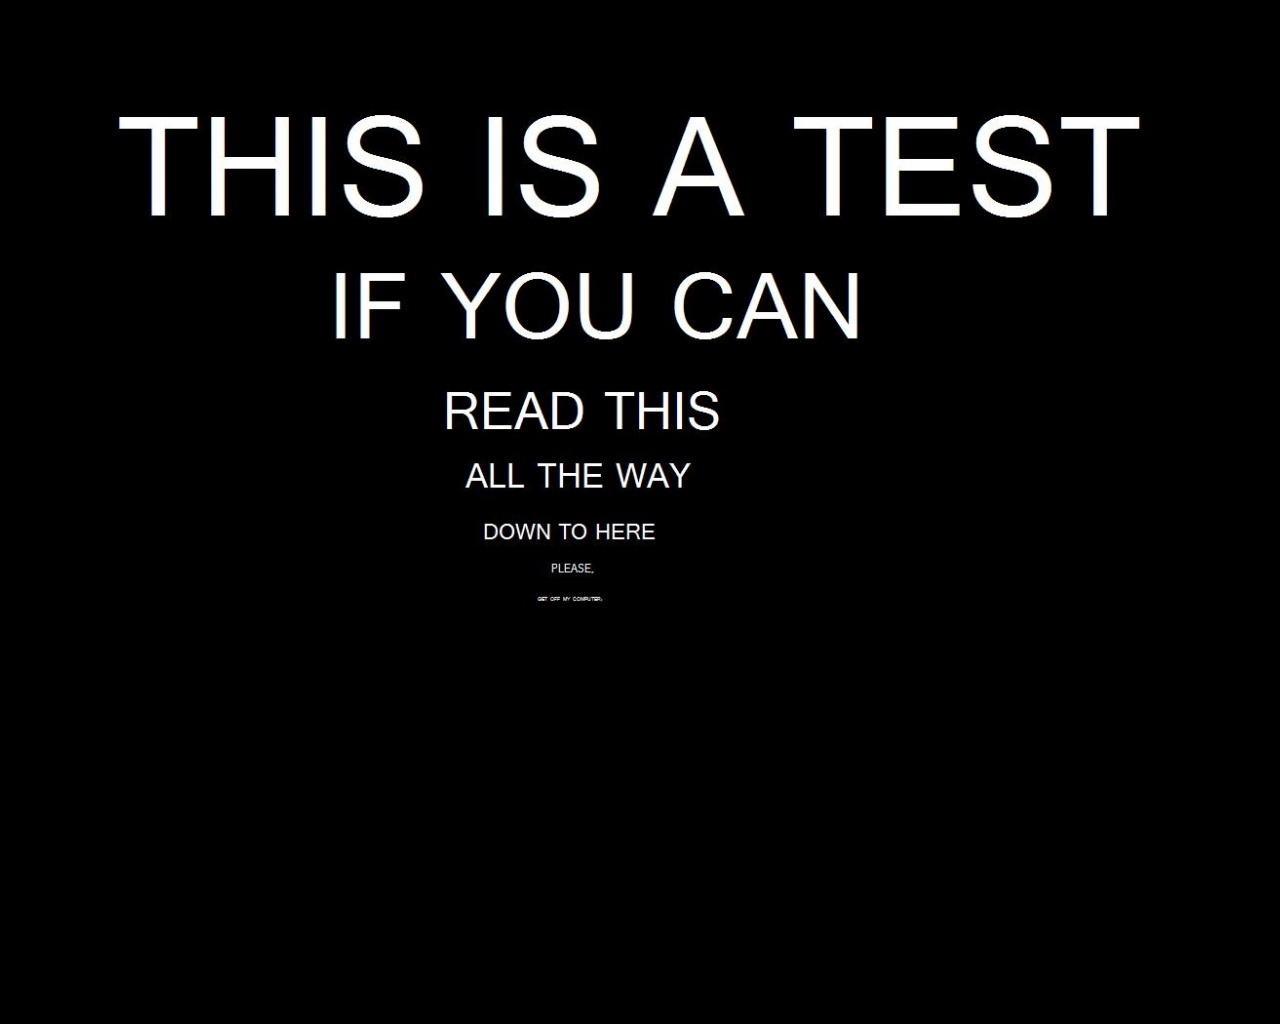 Wallpaper download exam - Click The Download Link From Above And Set The Wallpaper On The Desktop From Your Os